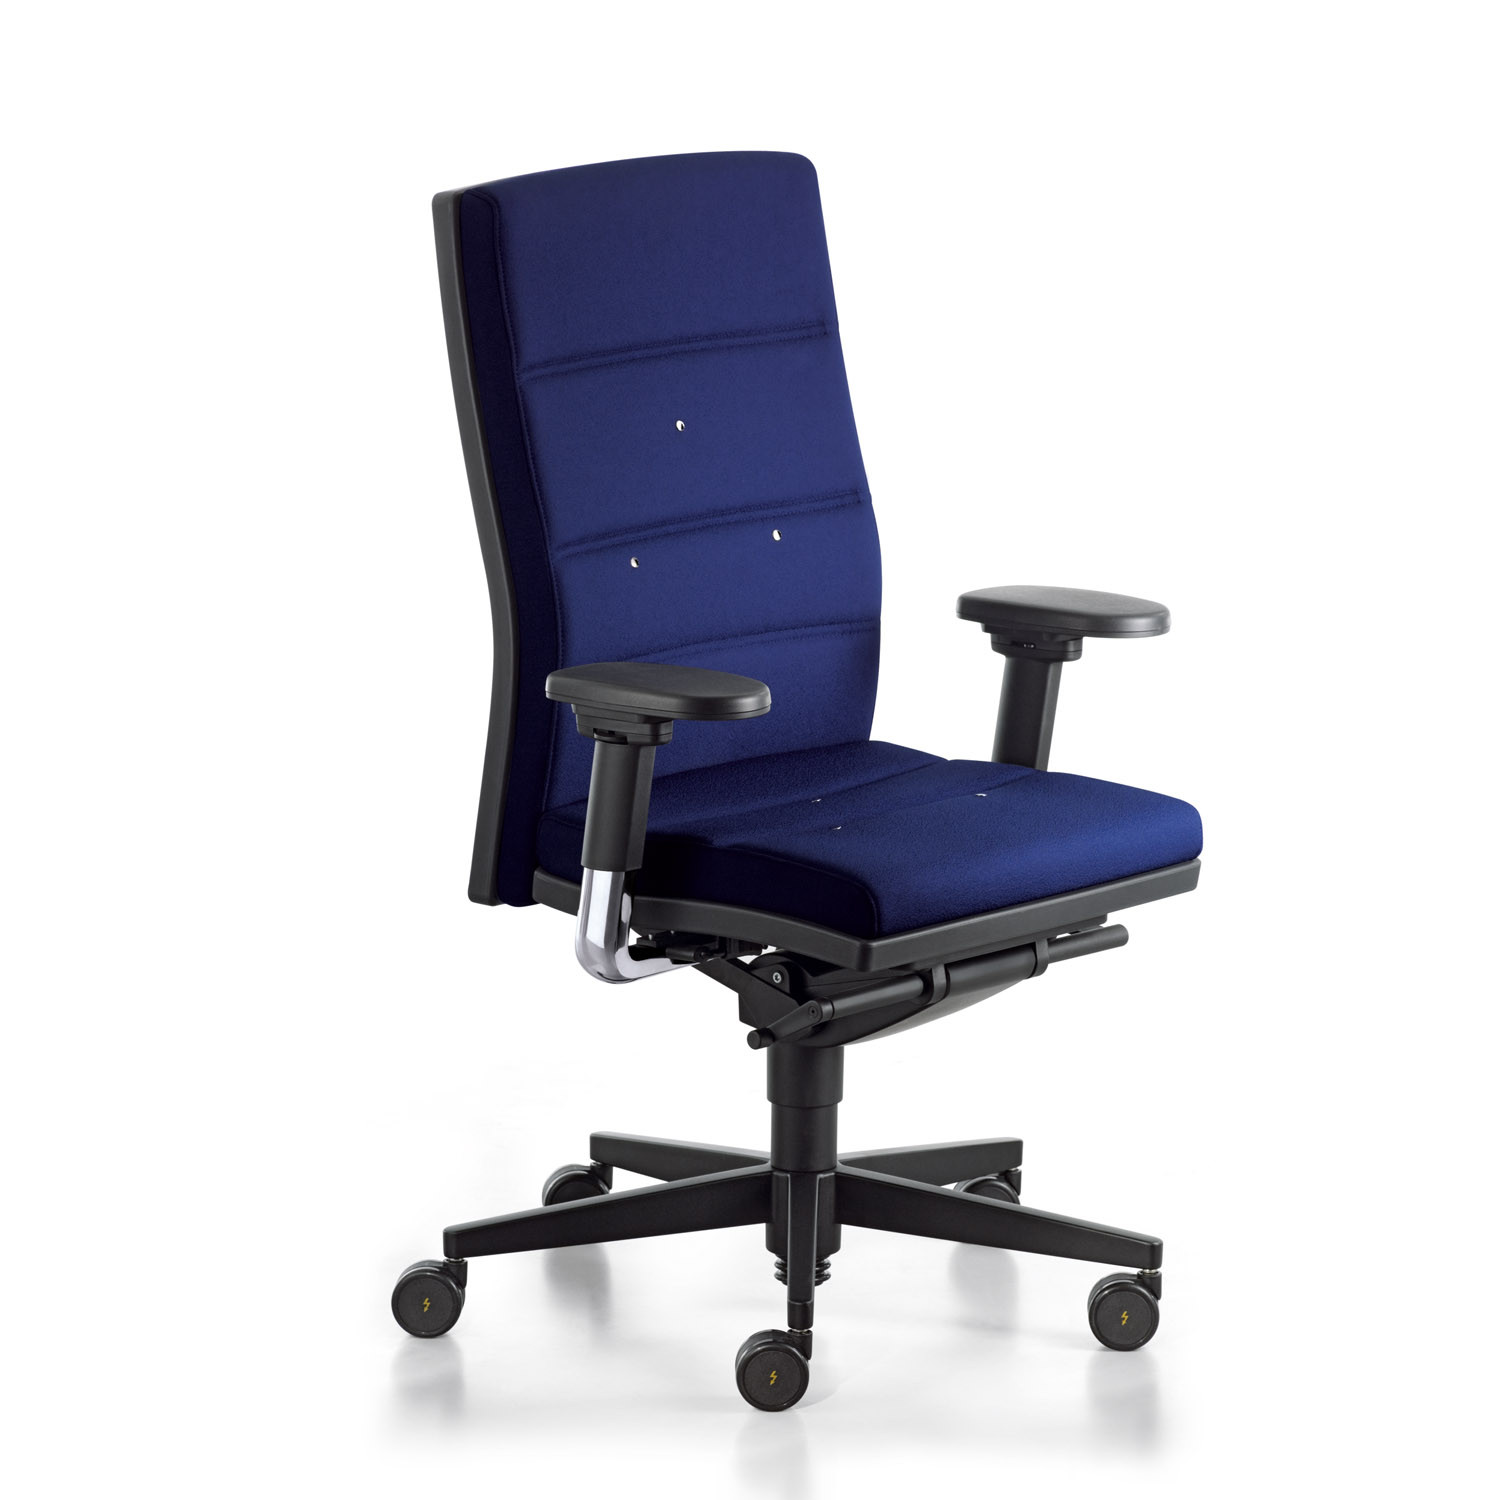 Mr. 24 Executive Chair without Neckrest